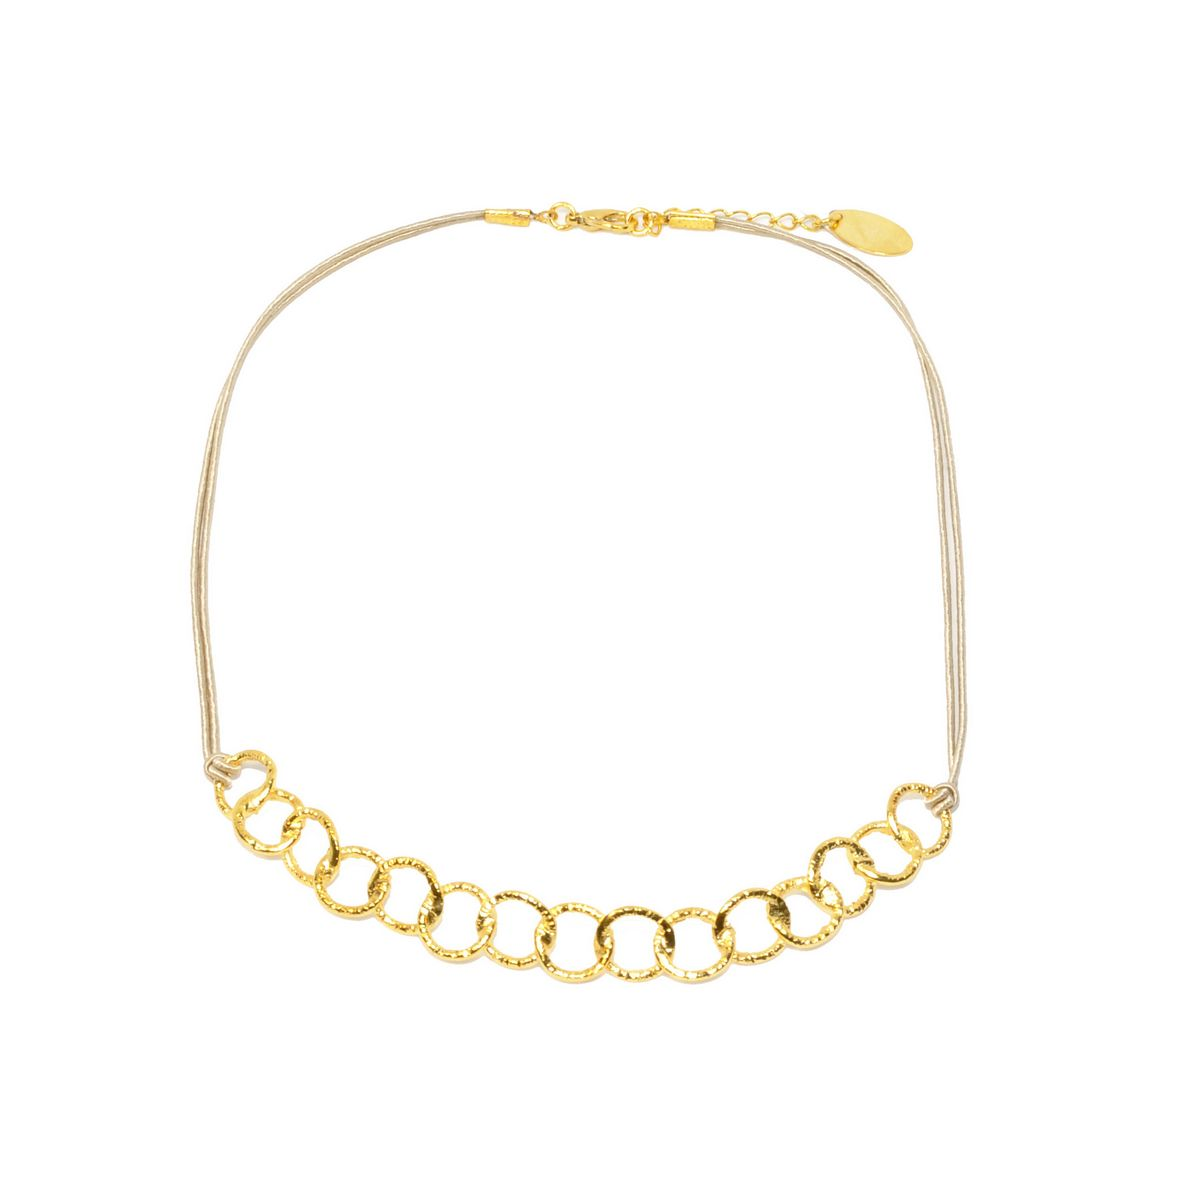 Necklace A4342-Gold- plated